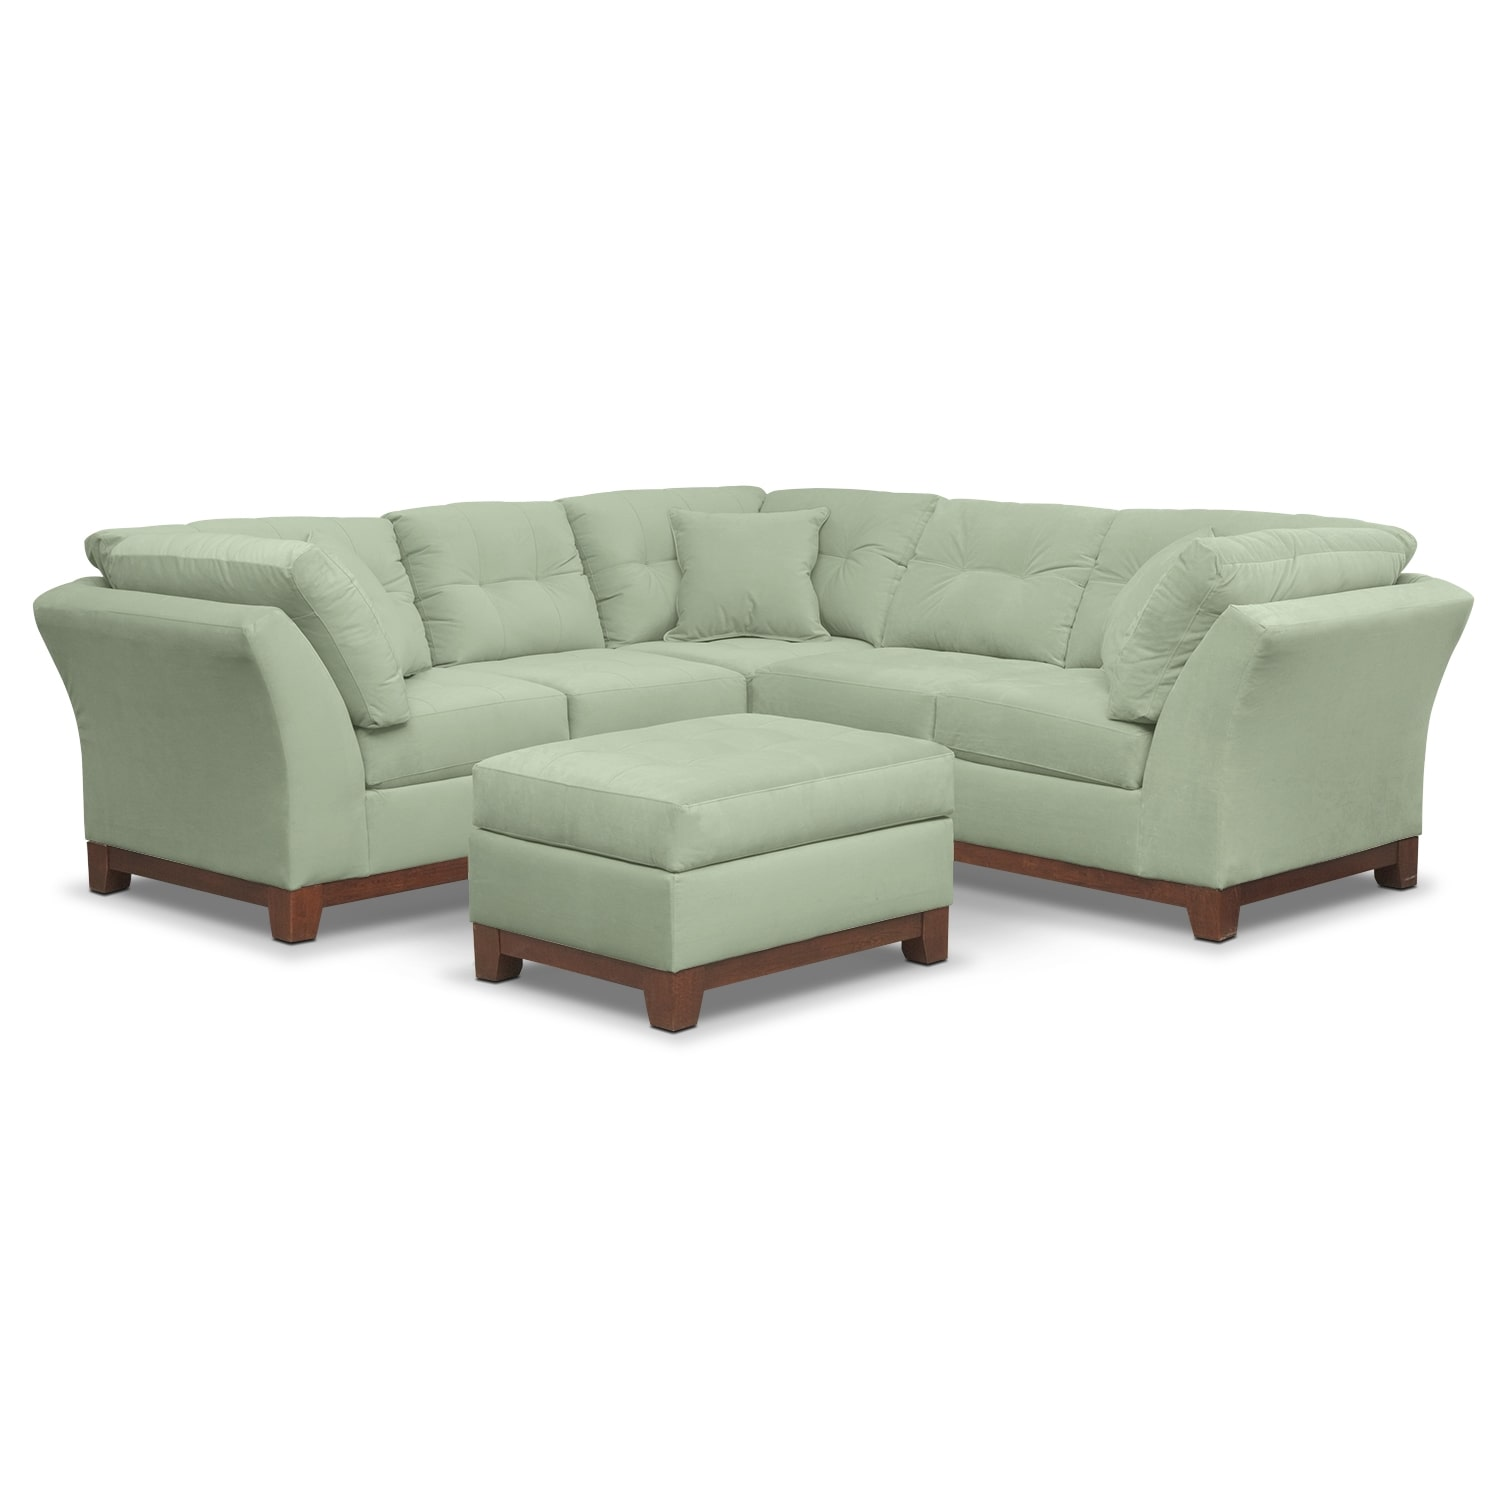 Living Room Furniture - Solace Spa II 2 Pc. Sectional (Alternate II Reverse) and Ottoman